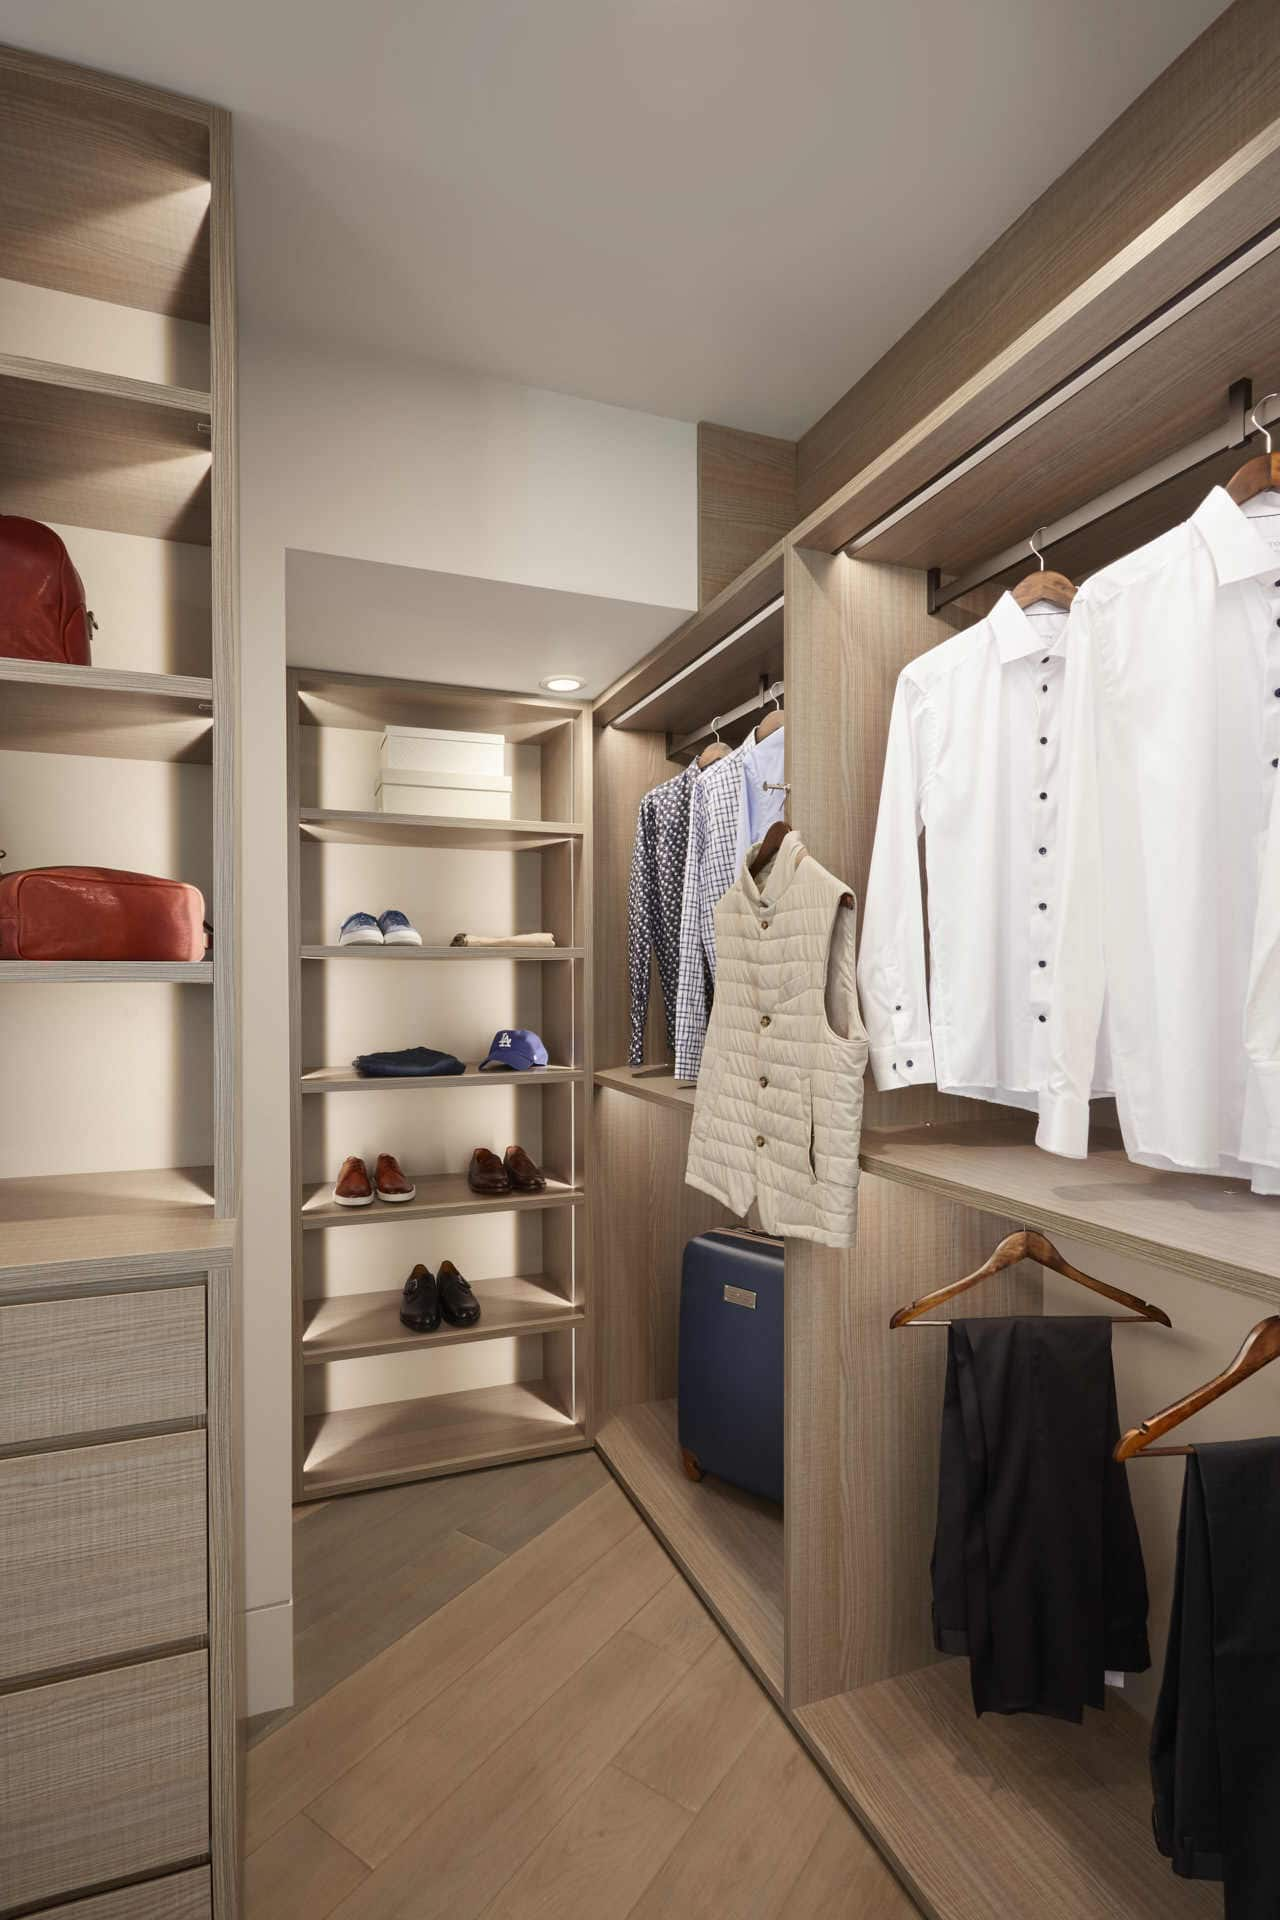 custom luxury schmalenbach closet contains a wide variety of innovative storage options